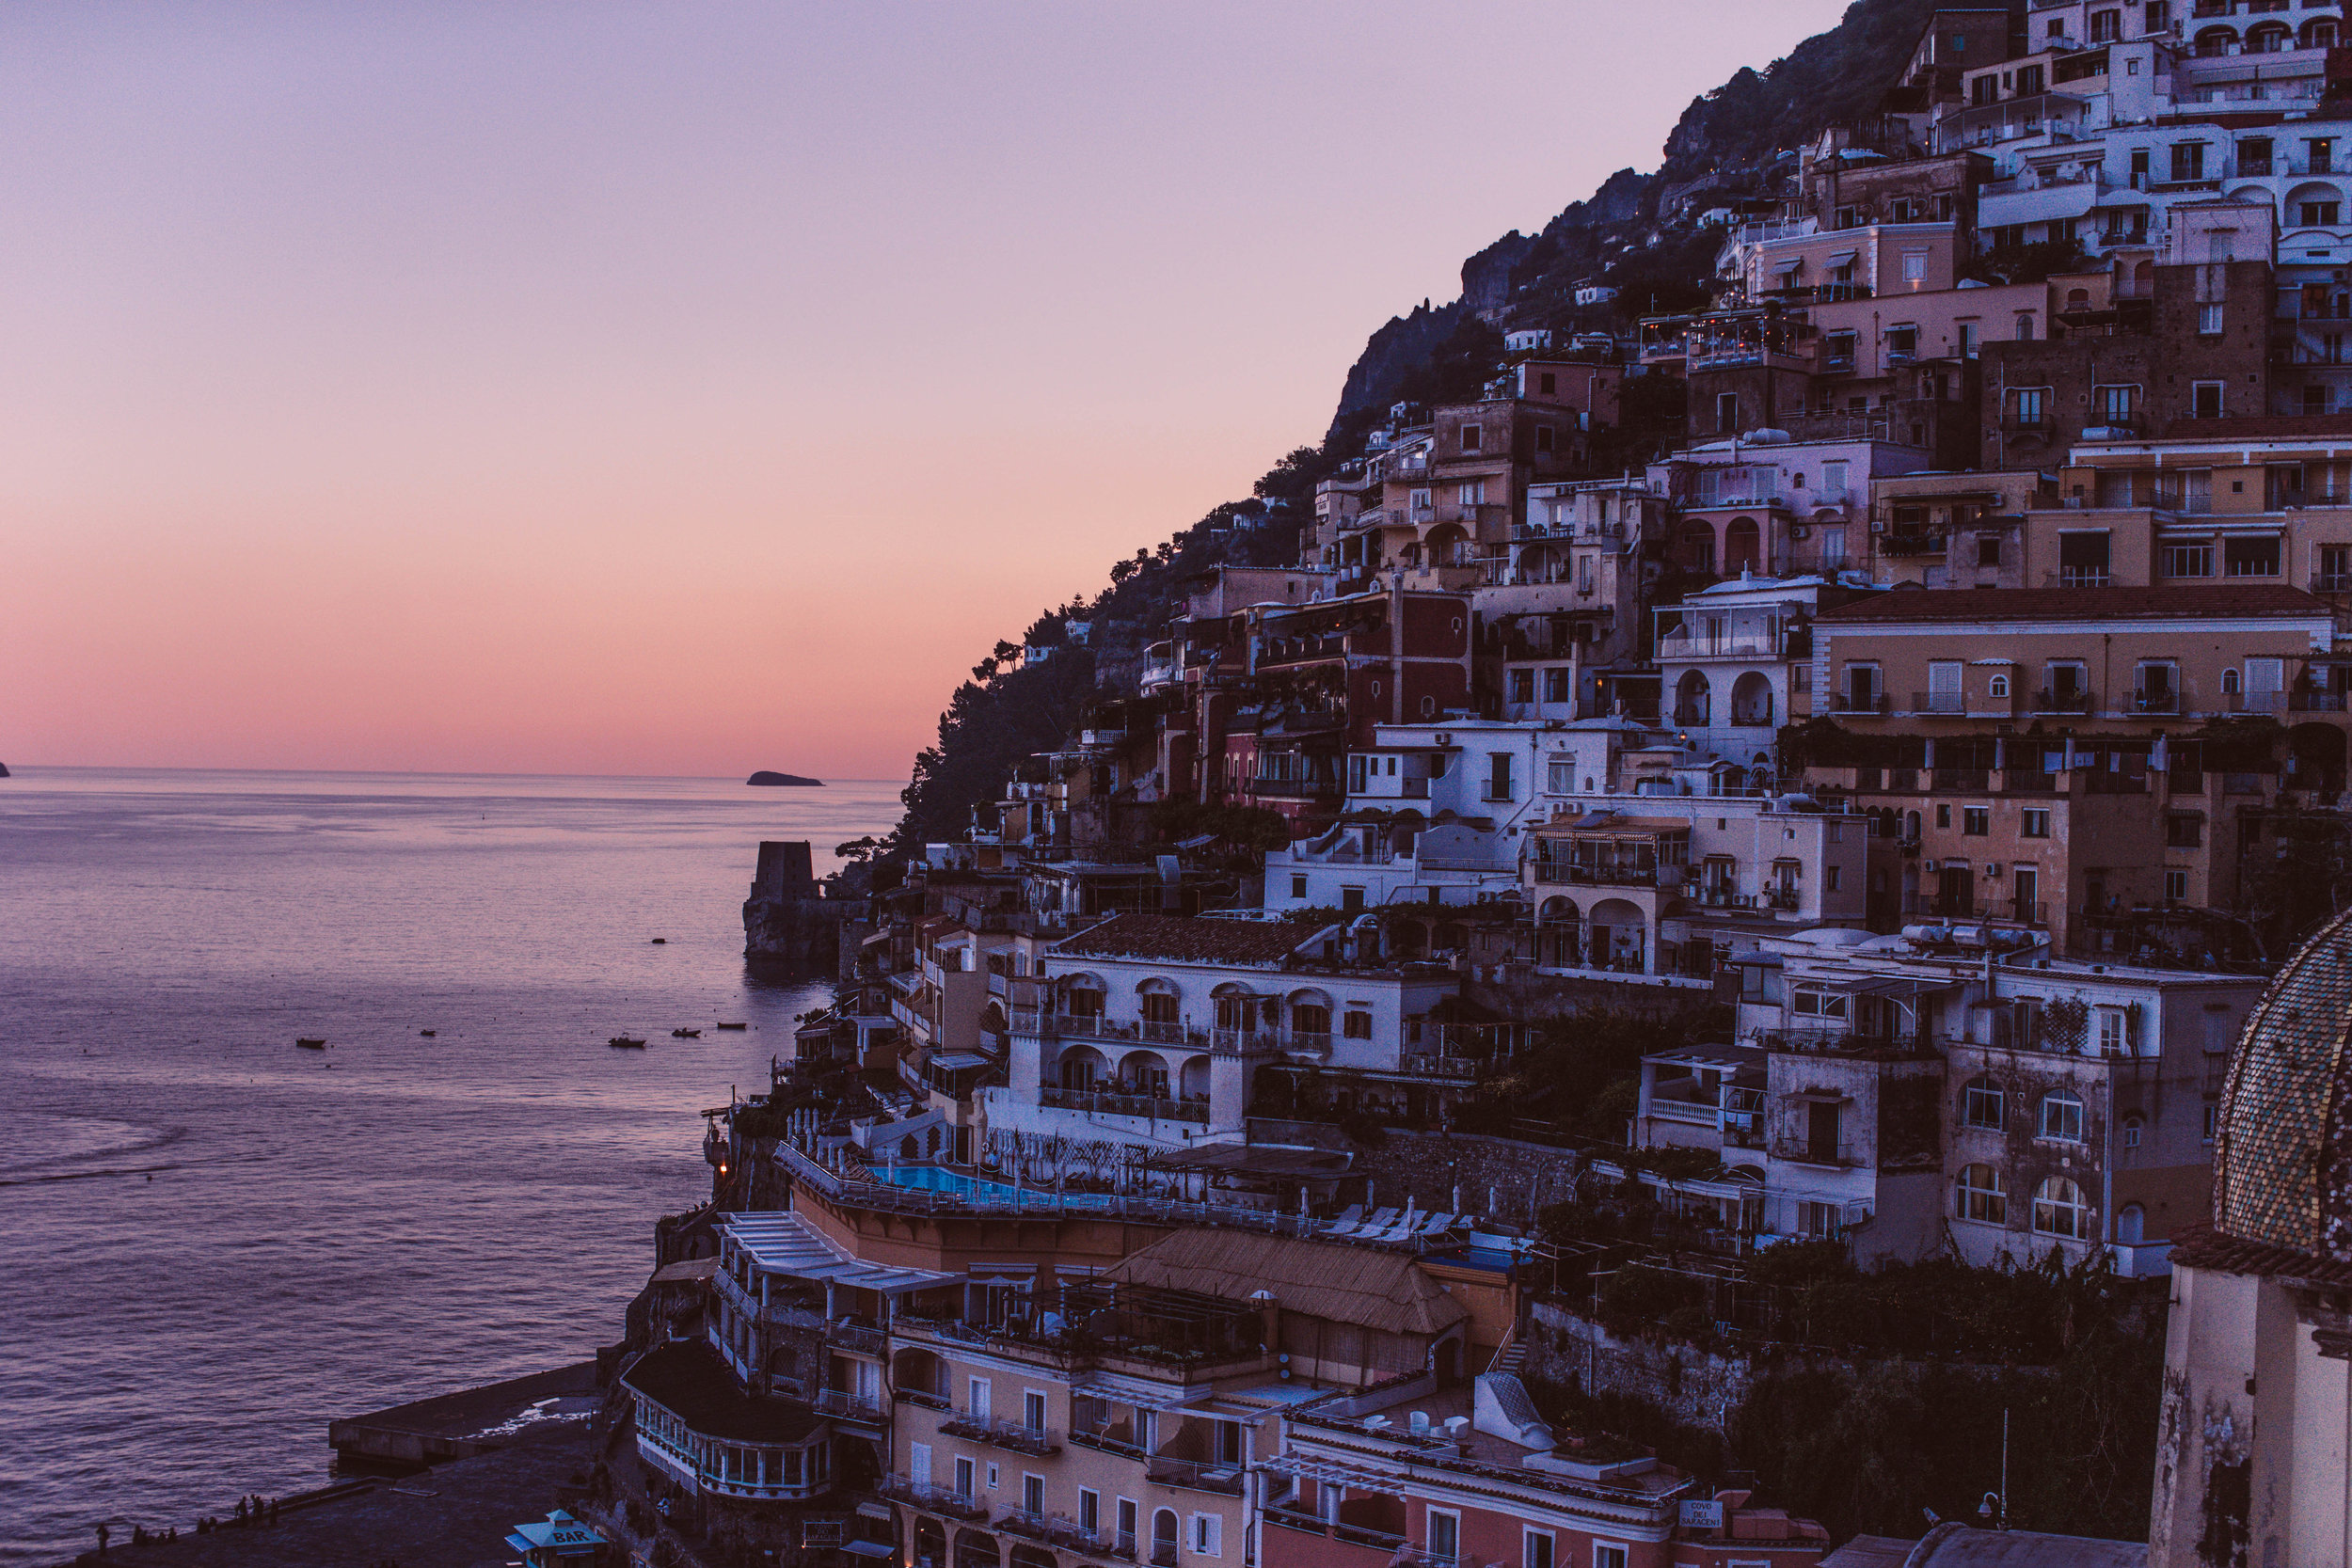 The view from Le Sirenuse, Positano